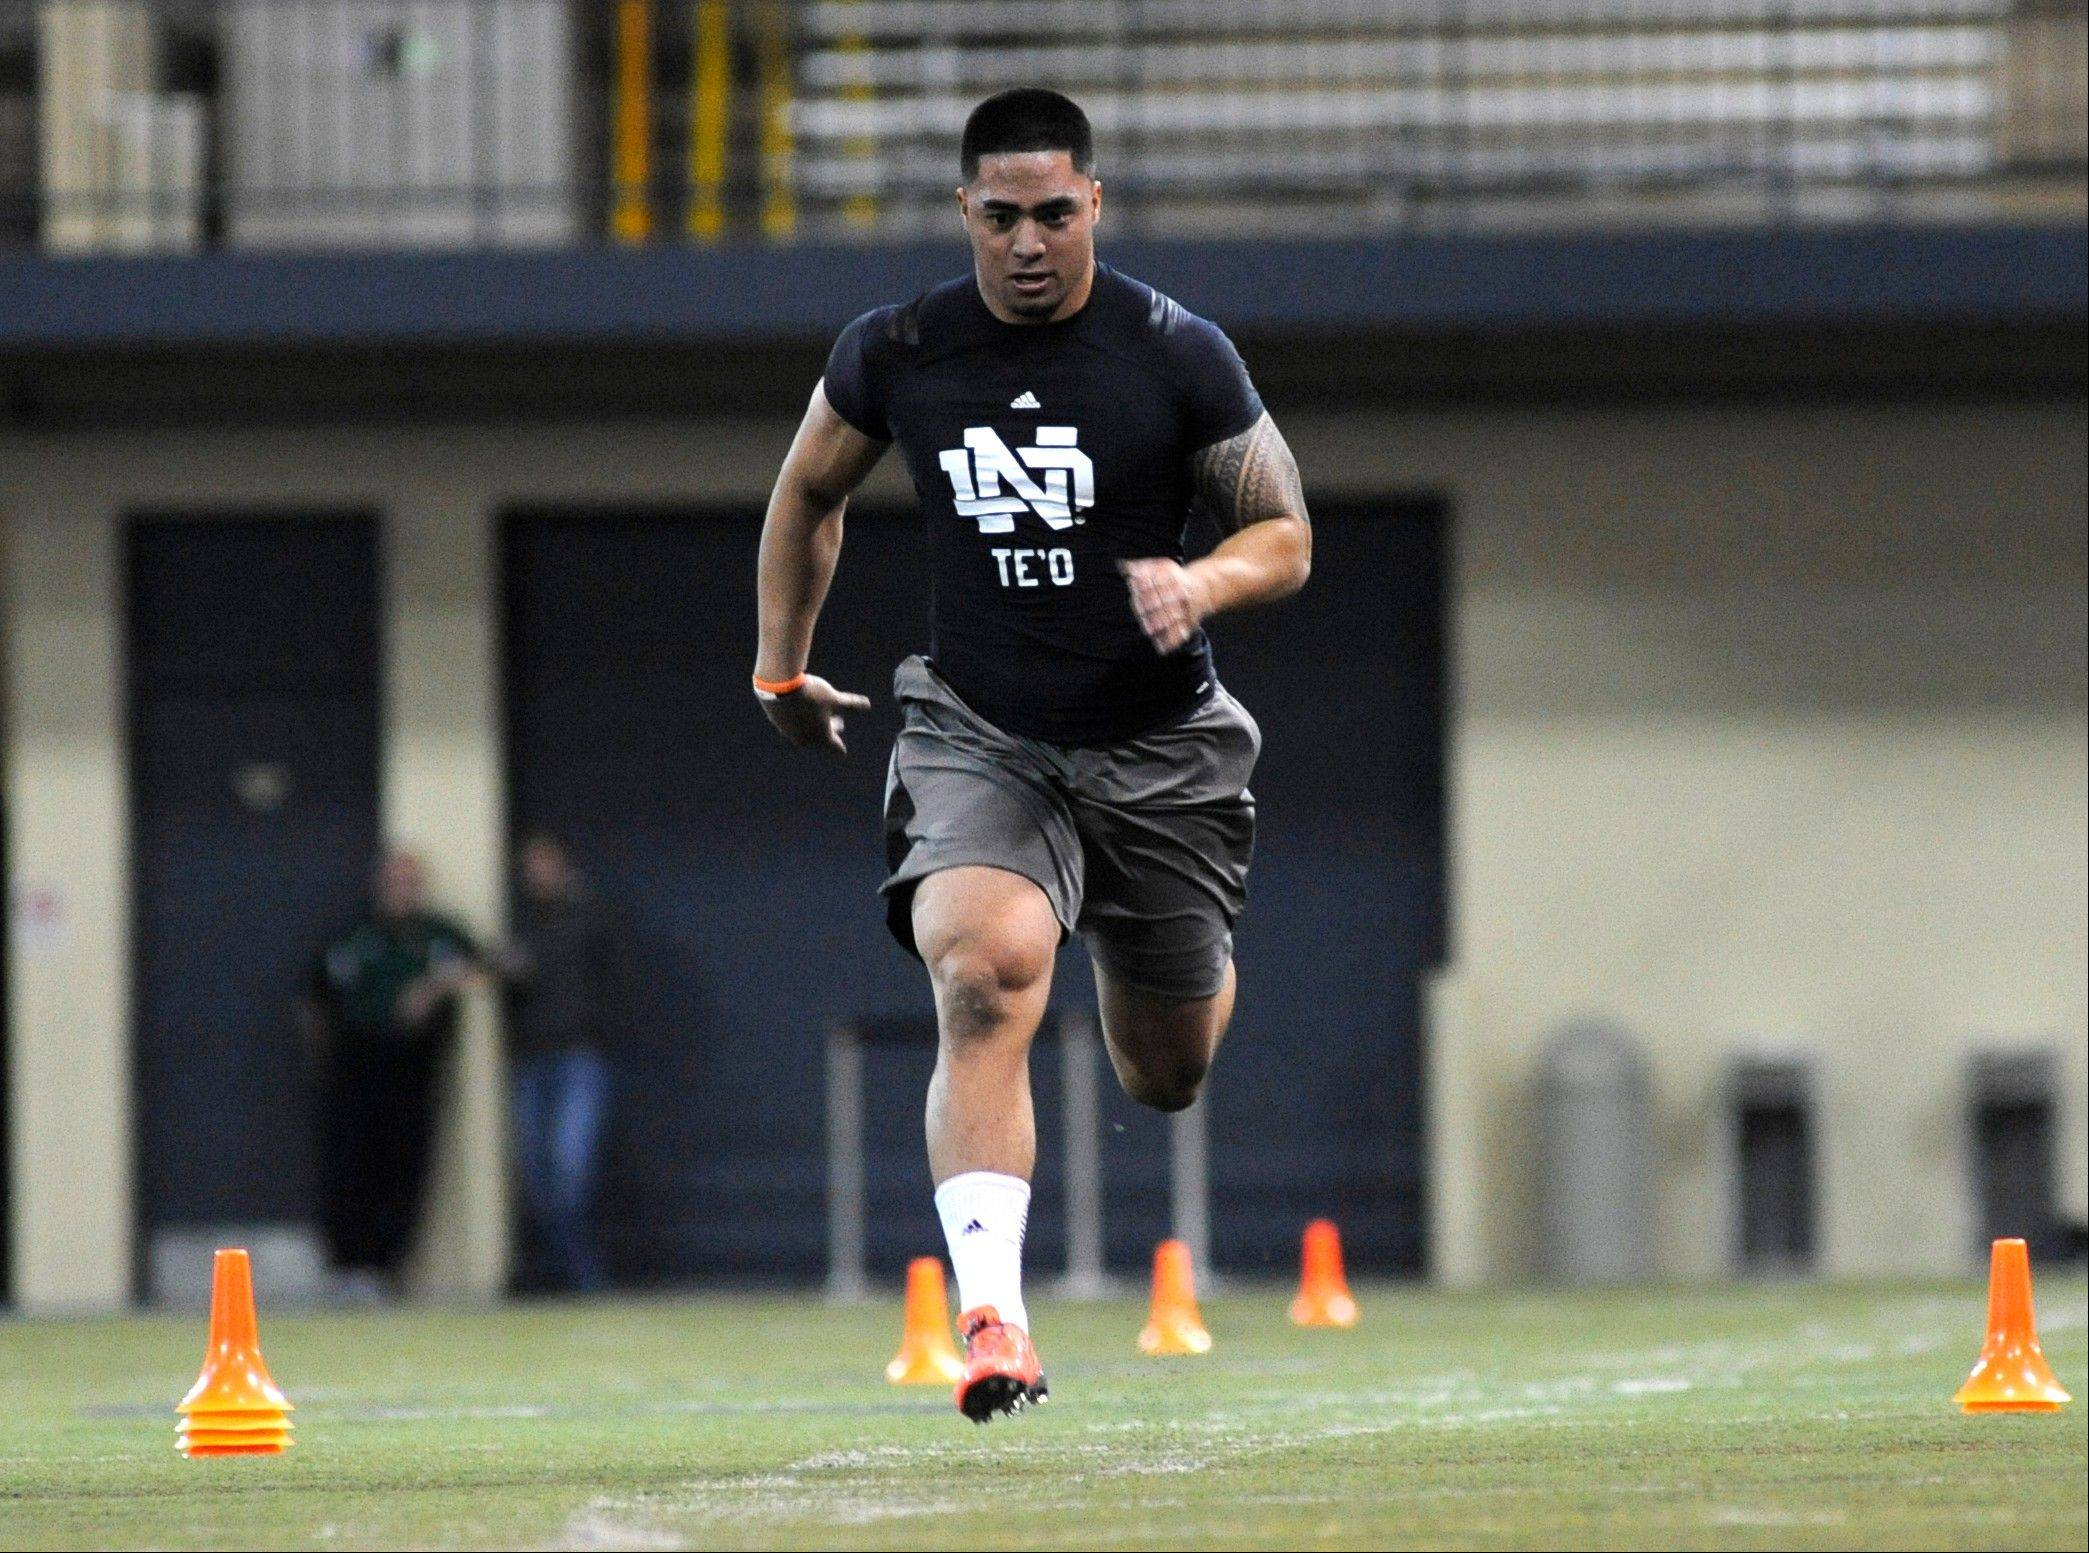 Linebacker Manti Te'o runs the 40-yard dash during Notre Dame's pro day for NFL scouts, Tuesday March 26, 2013 in South Bend, Ind. (AP Photo/Joe Raymond)